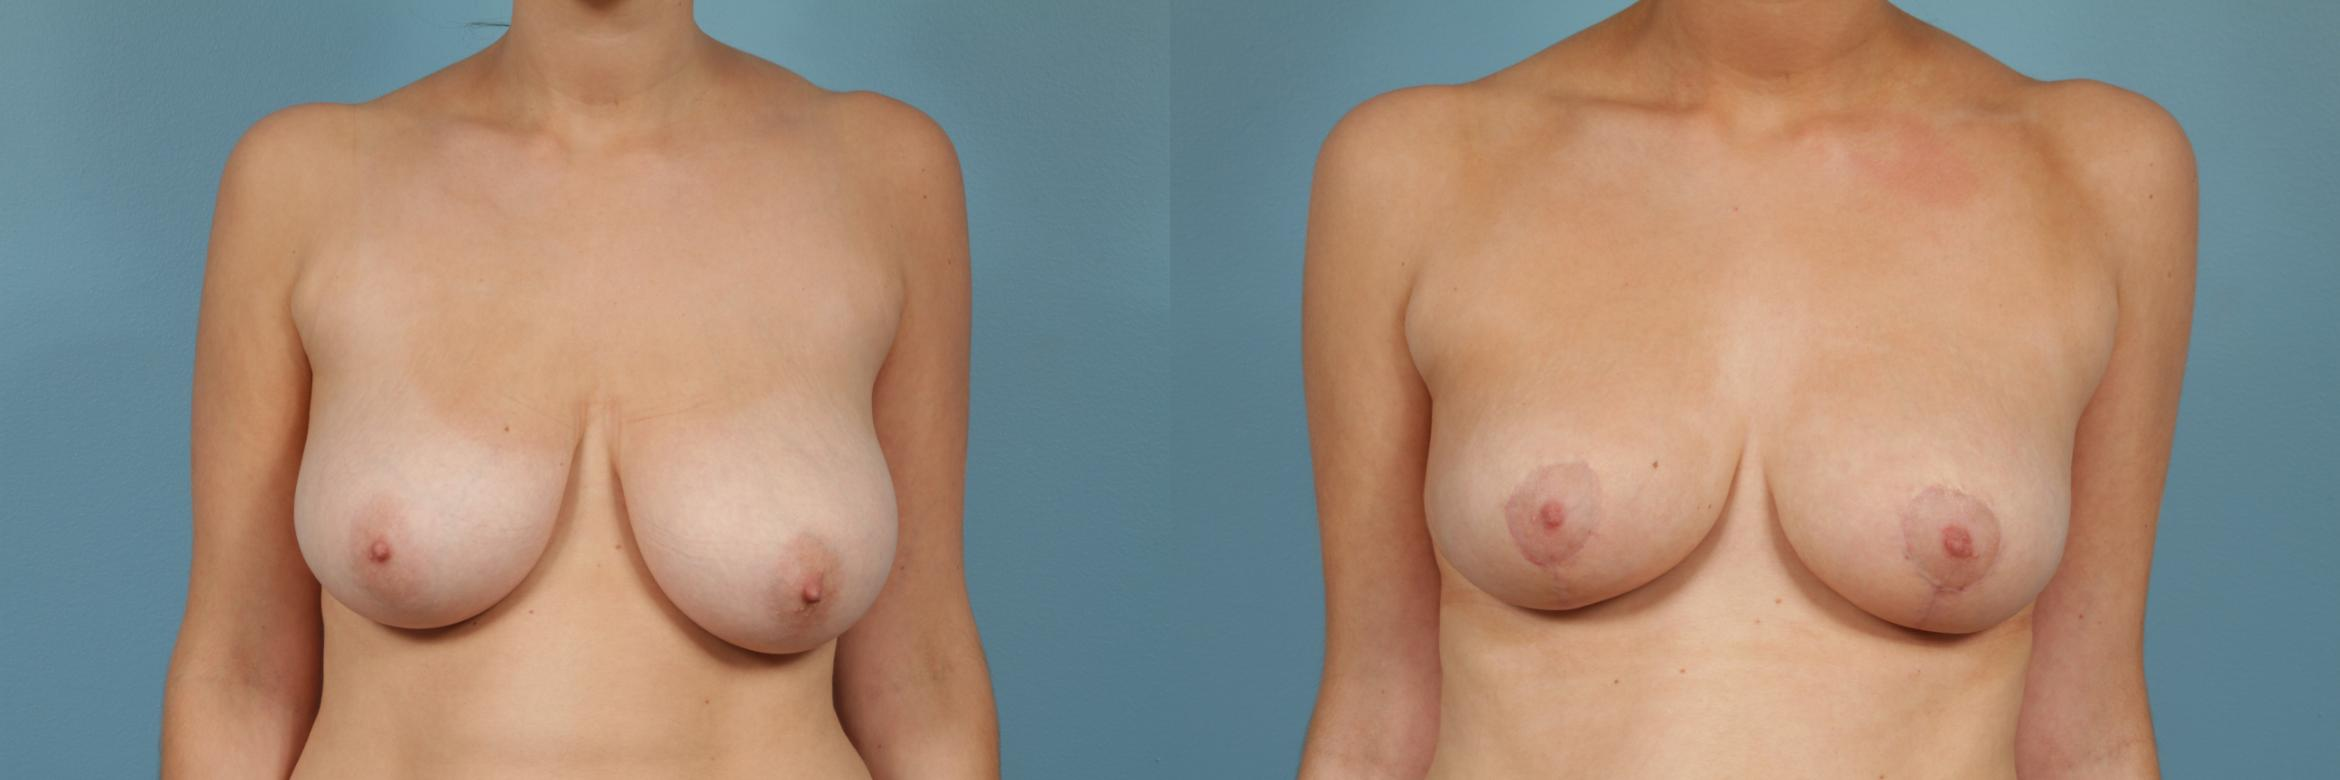 Breast Reduction Case 241 Before & After View #1 | Chicago, IL | TLKM Plastic Surgery